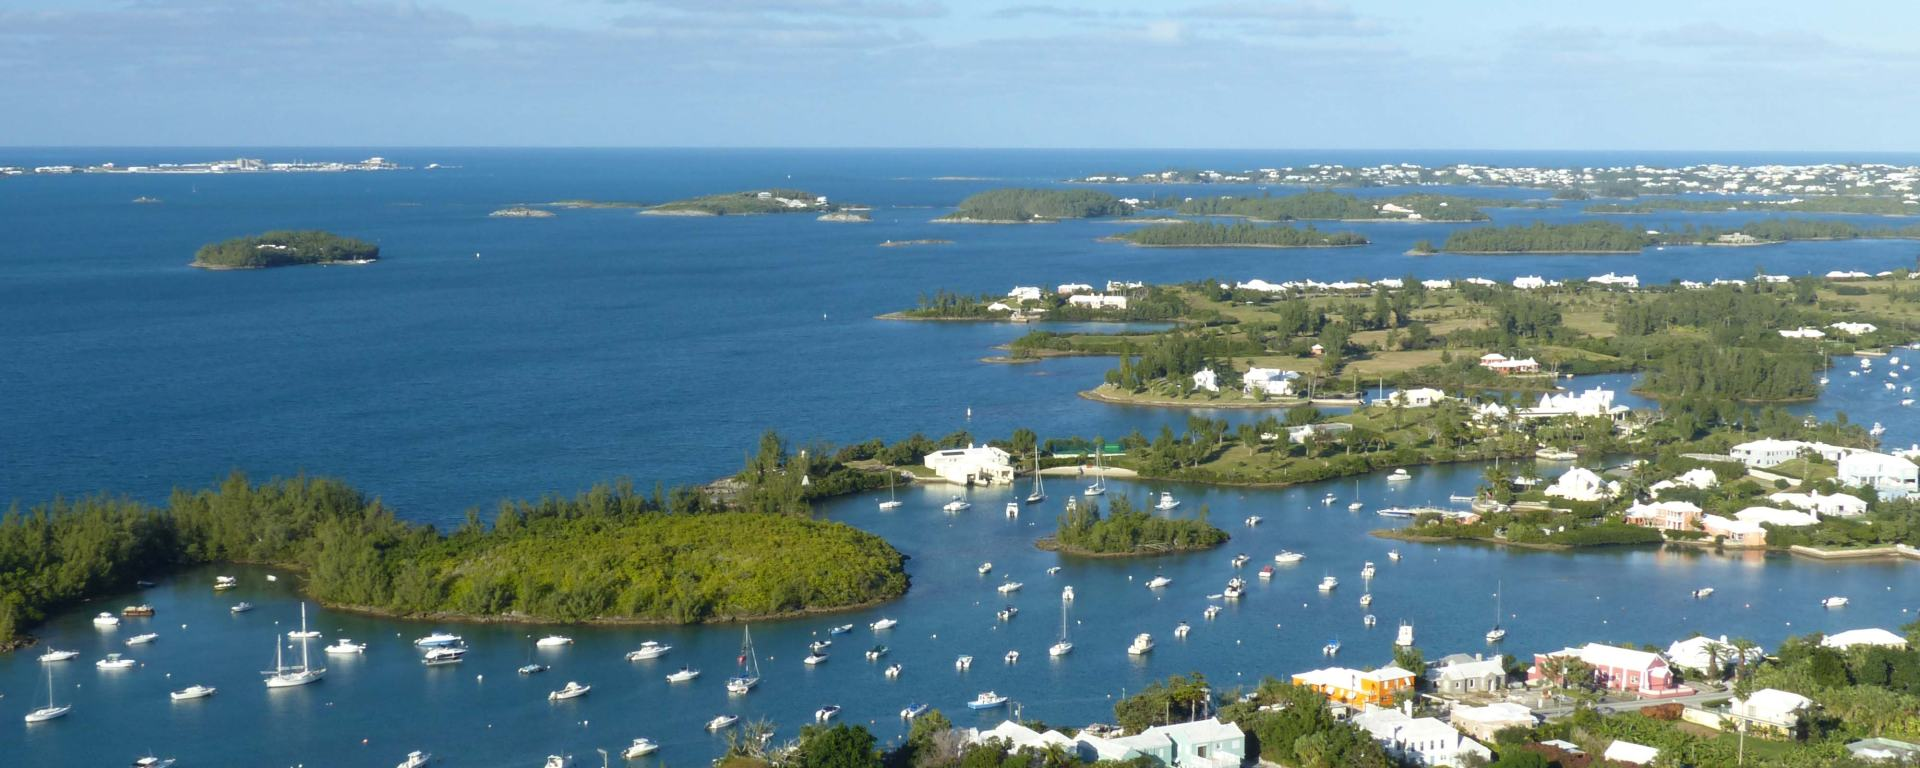 Bermuda Railway Trail view from Gibbs Hill Lighthouse